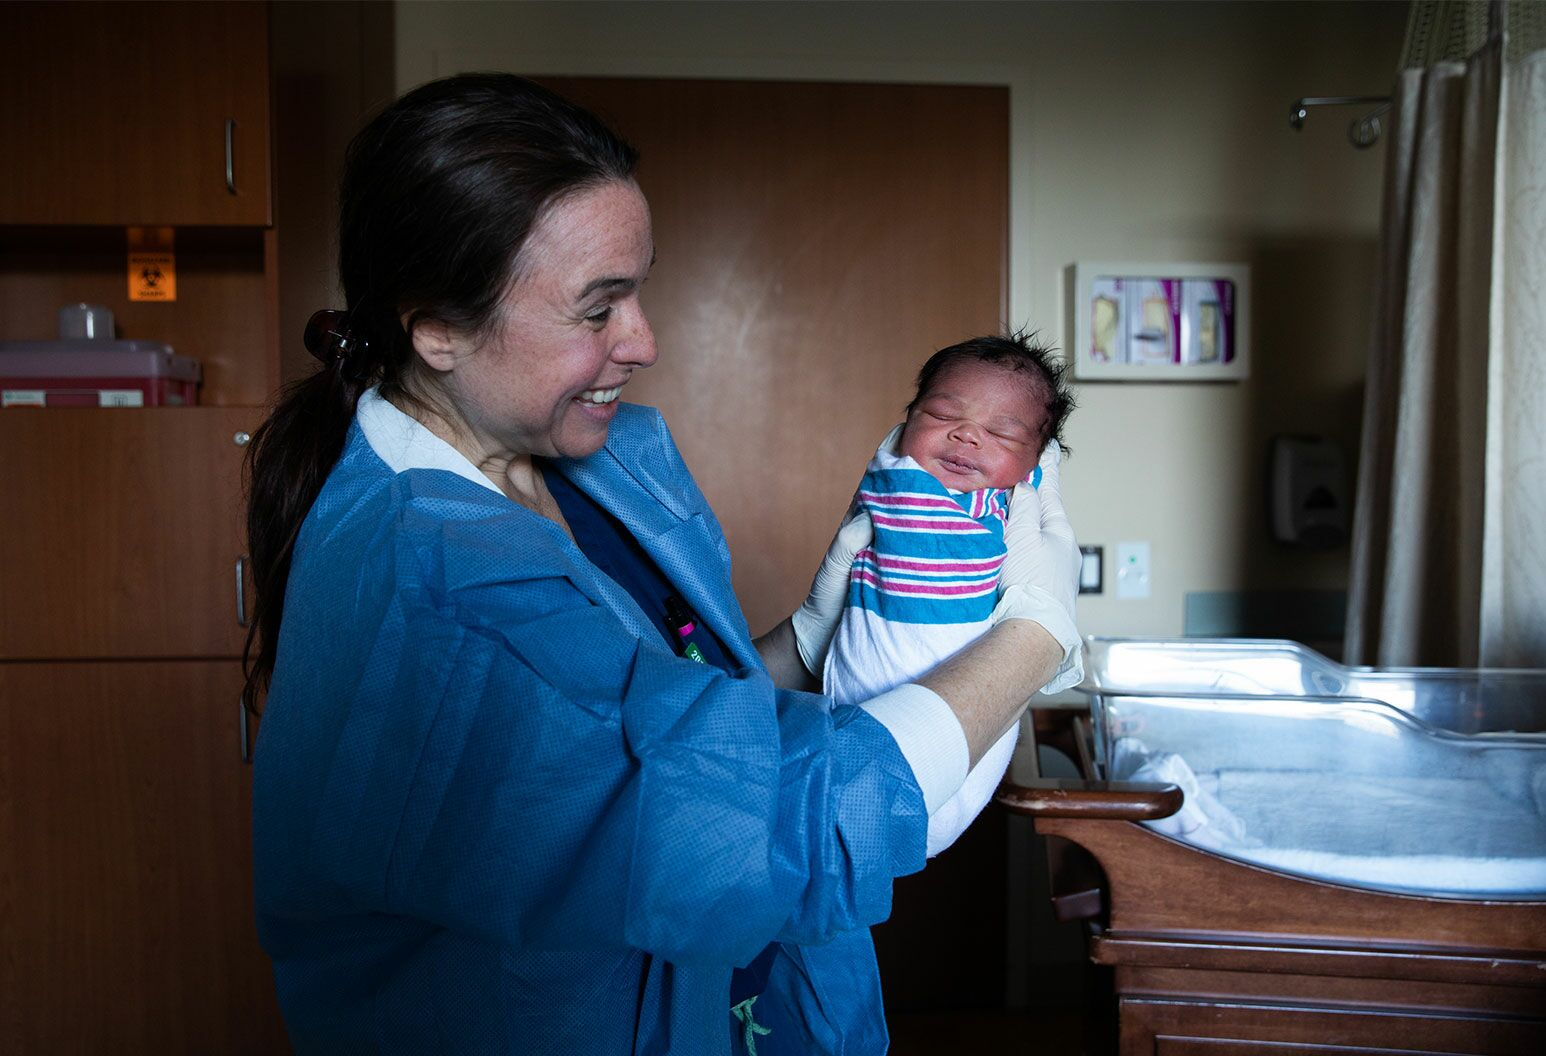 A woman with dark hair tied up in blue scrubs holds a newborn baby toward the camera swaddled in a hospital wrap. The baby is letting out a faint smile.